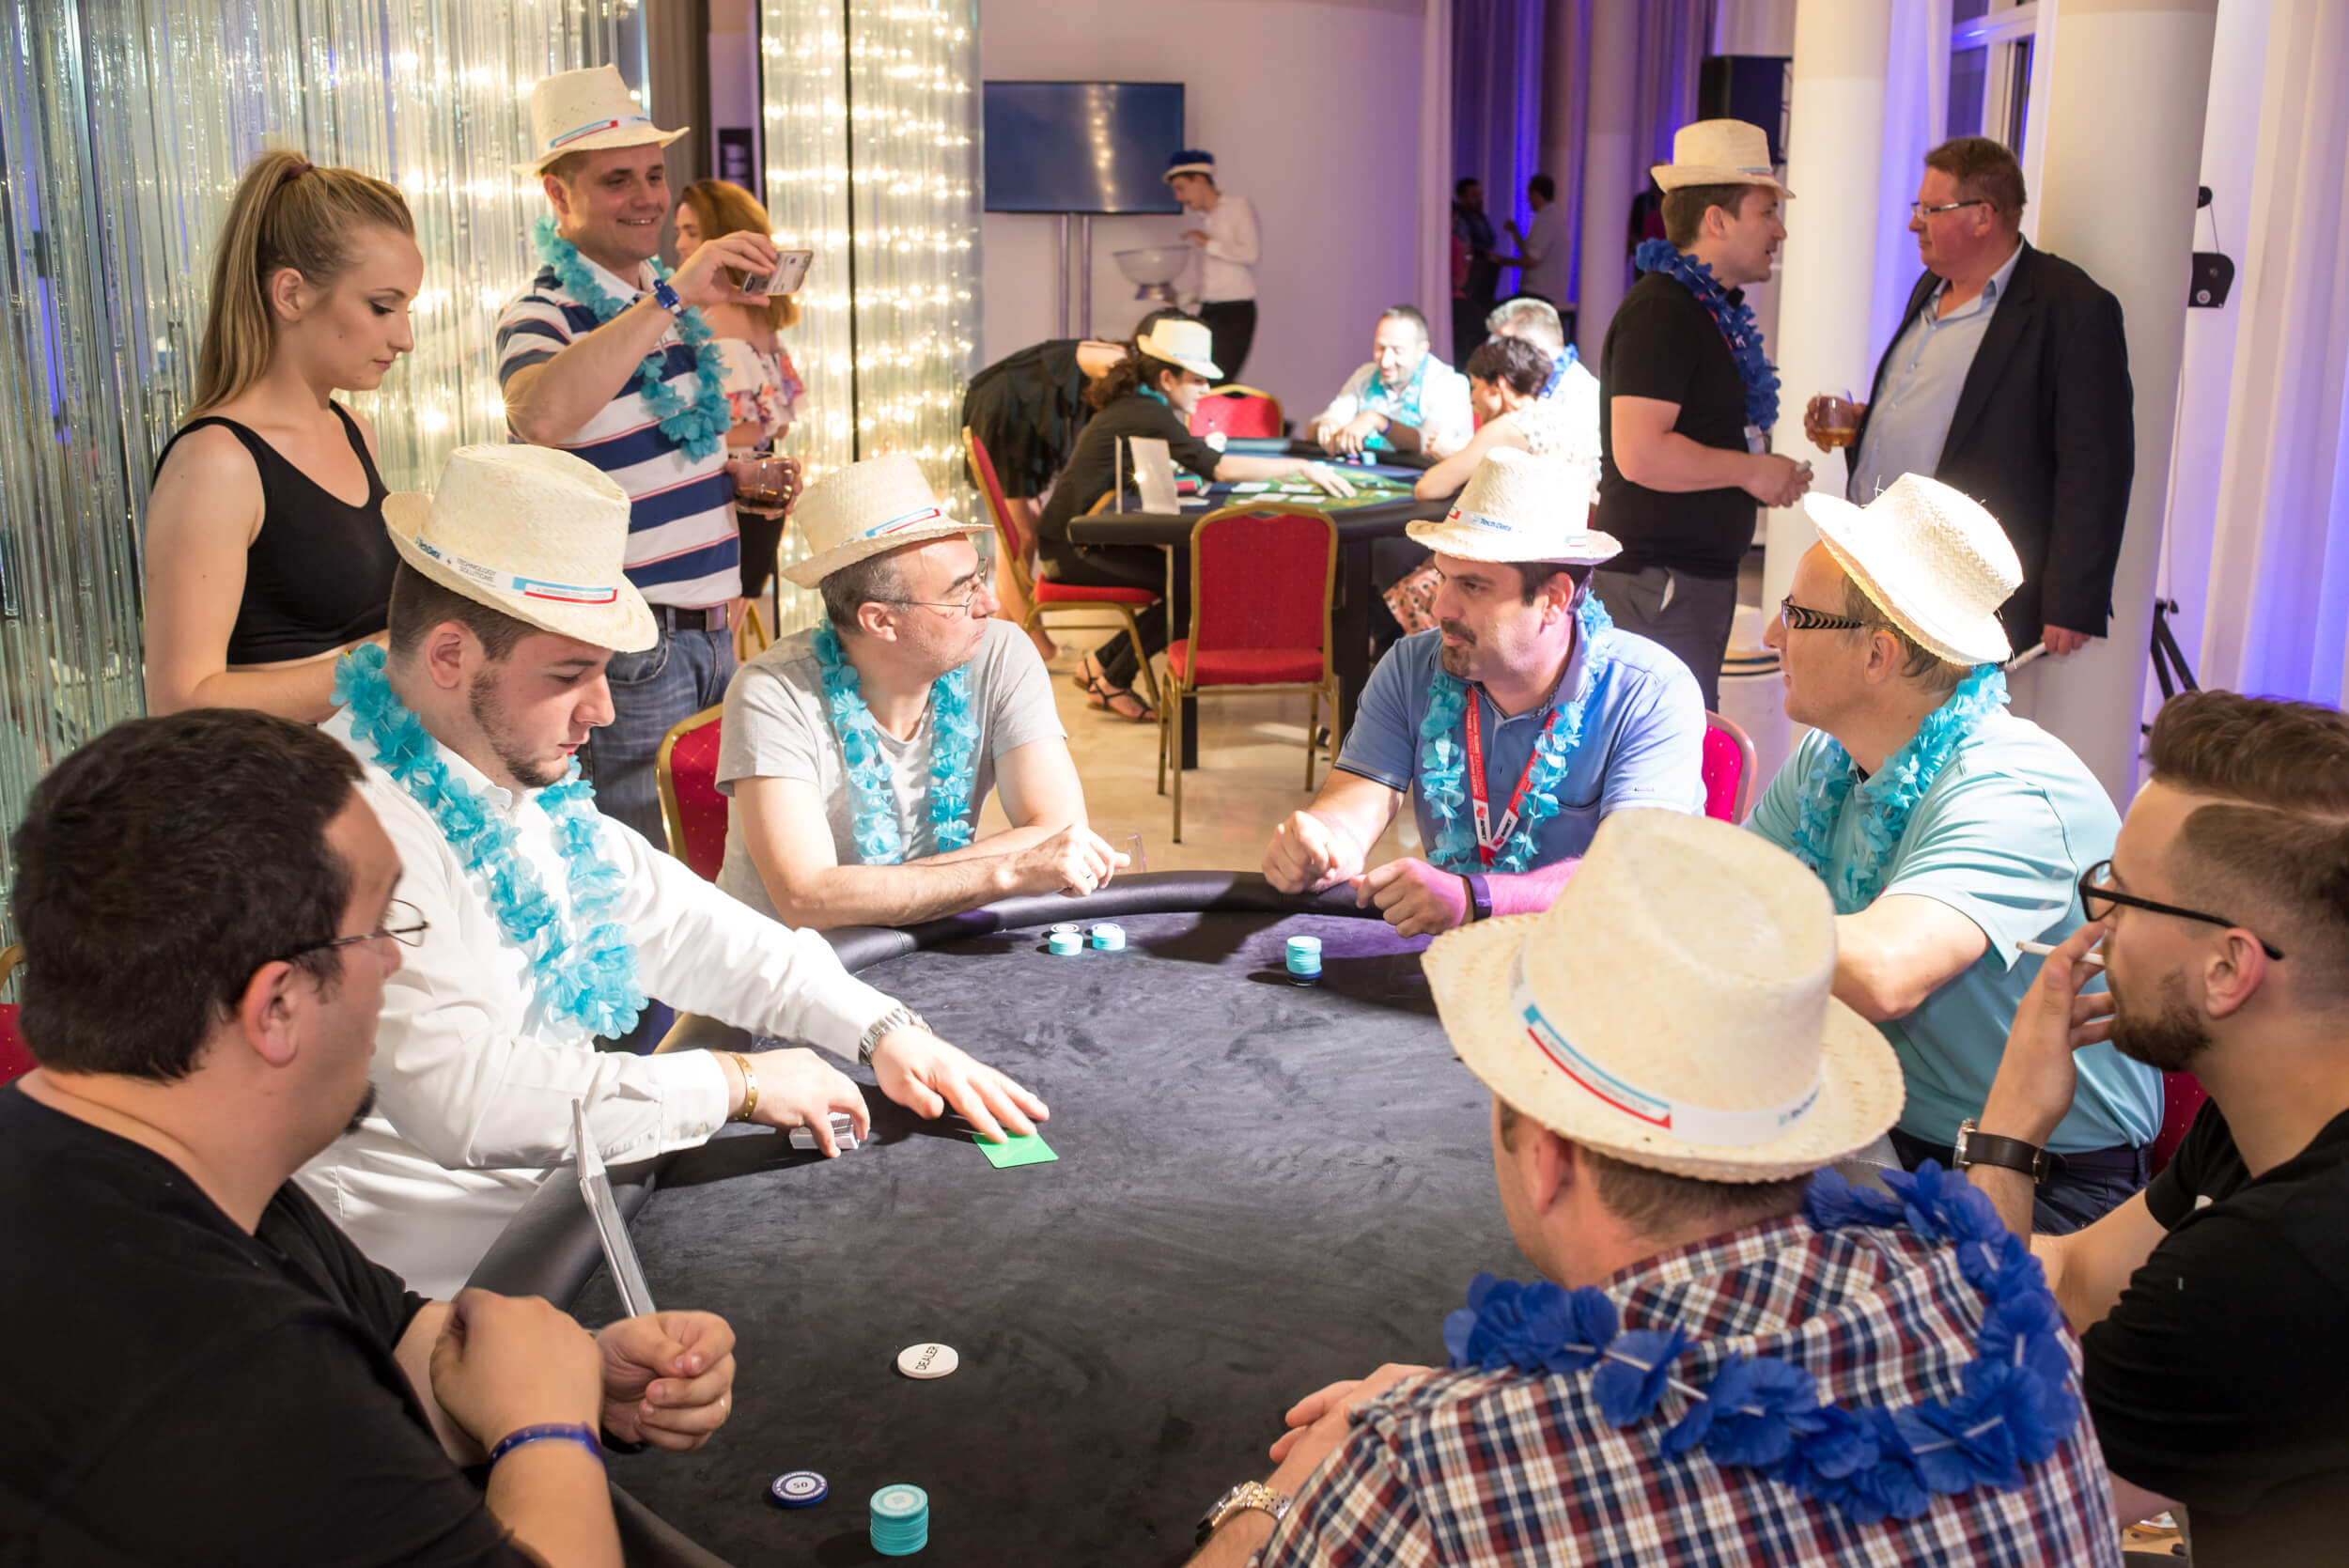 Cuba party event Texas Hold'em poker